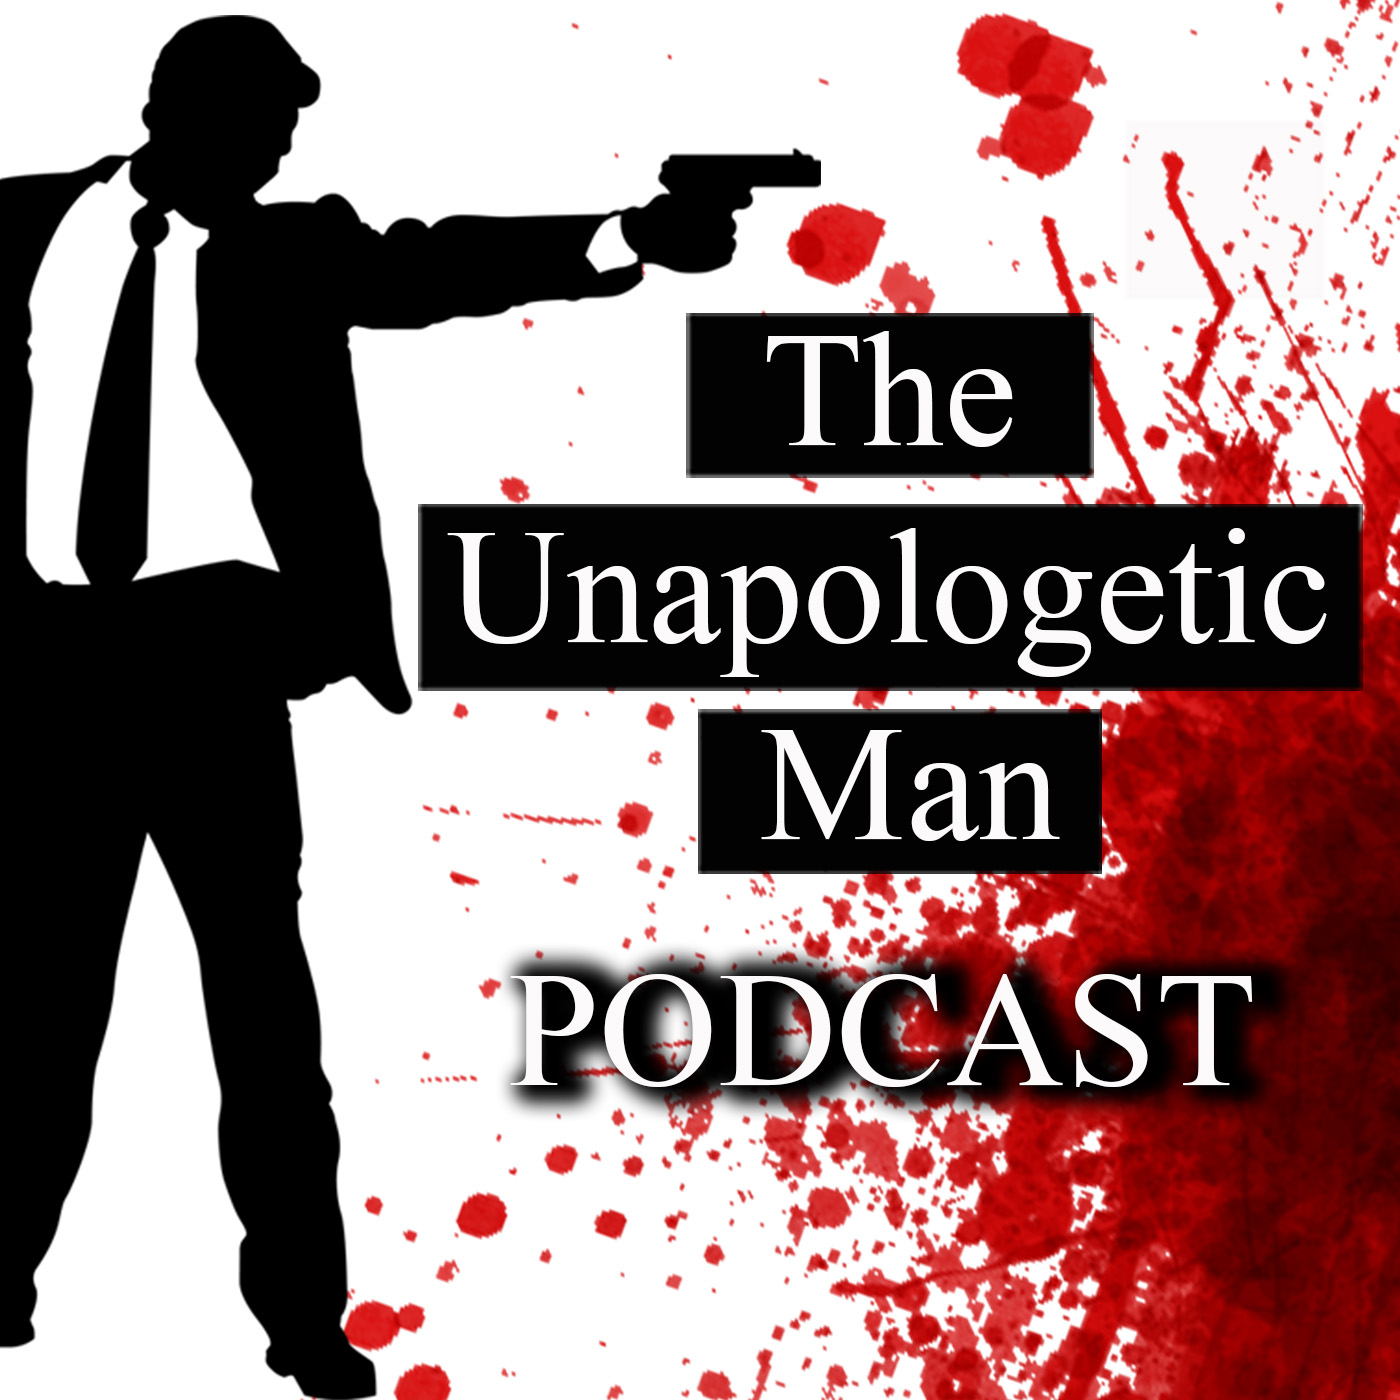 The Unapologetic Man Podcast   Libsyn Directory